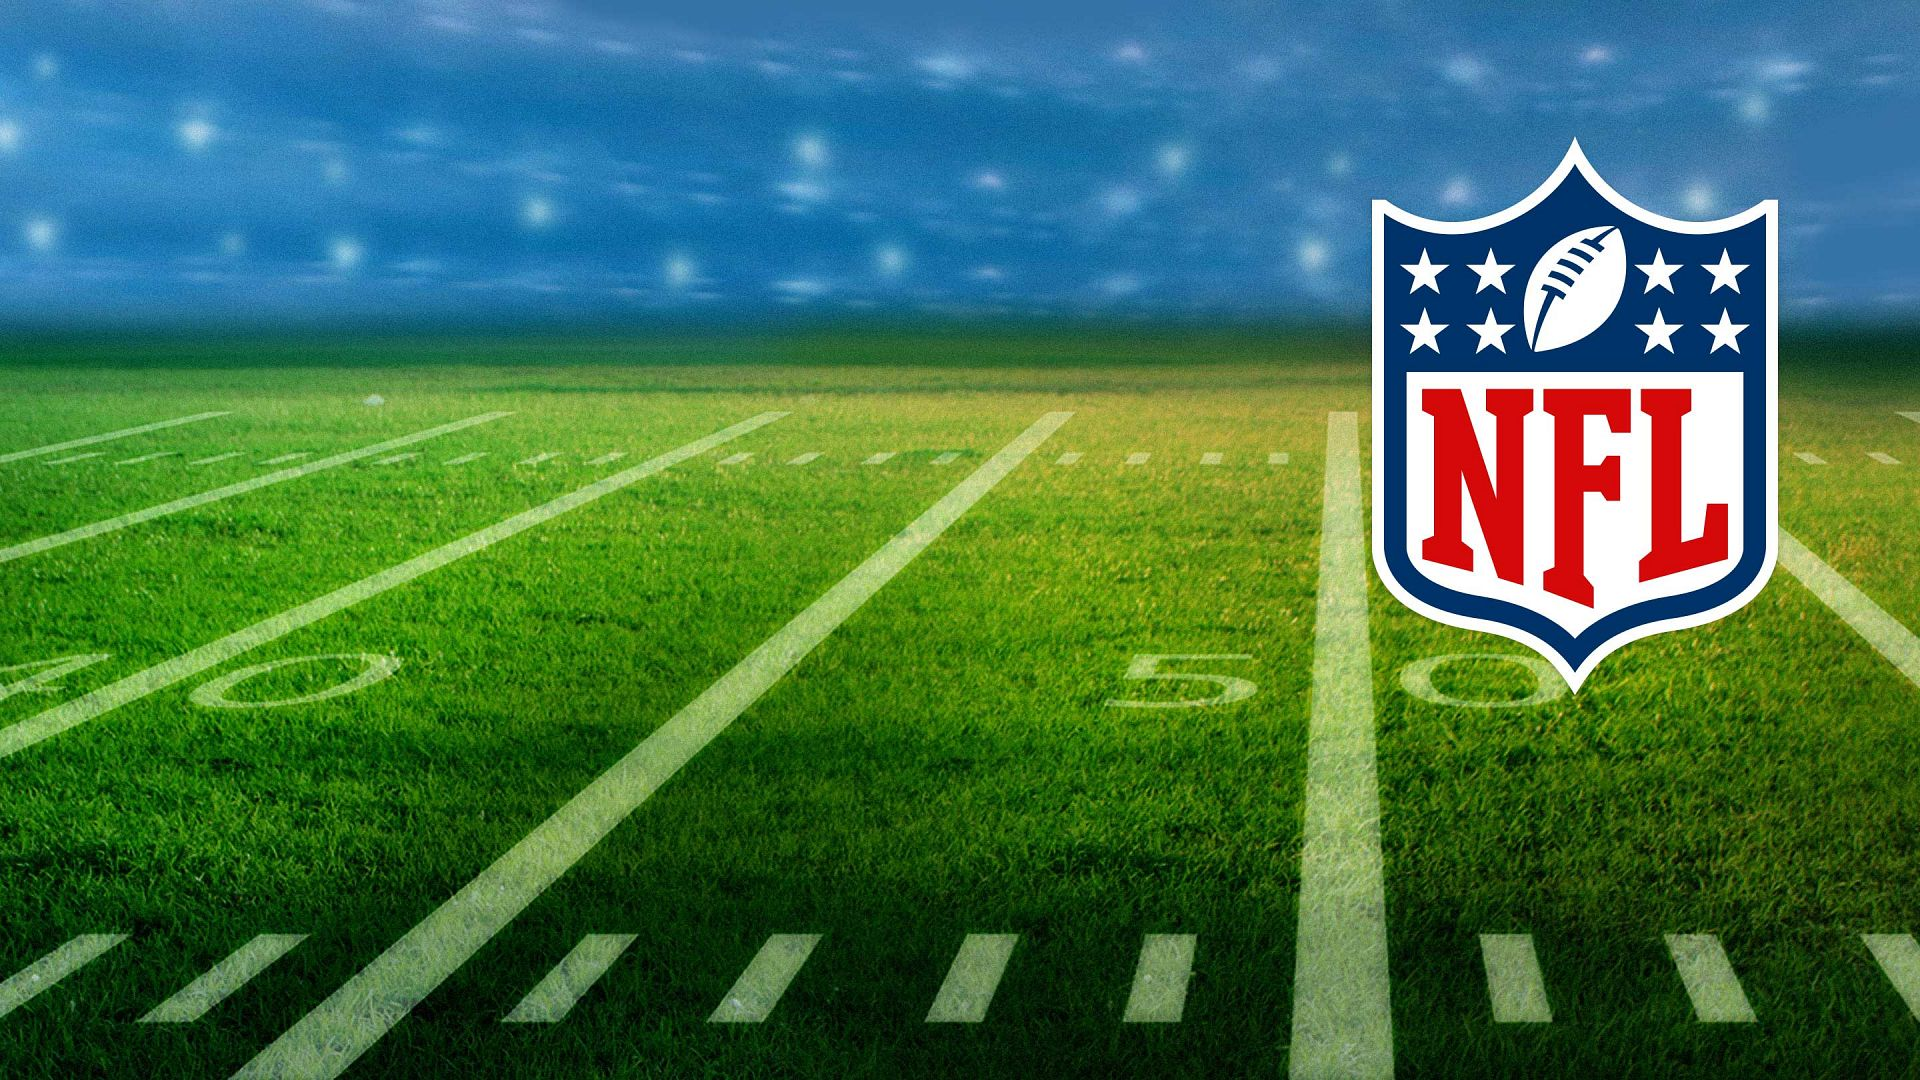 Watch Live Nfl Games On Cbs All Access Stream On Ios Android Web And More